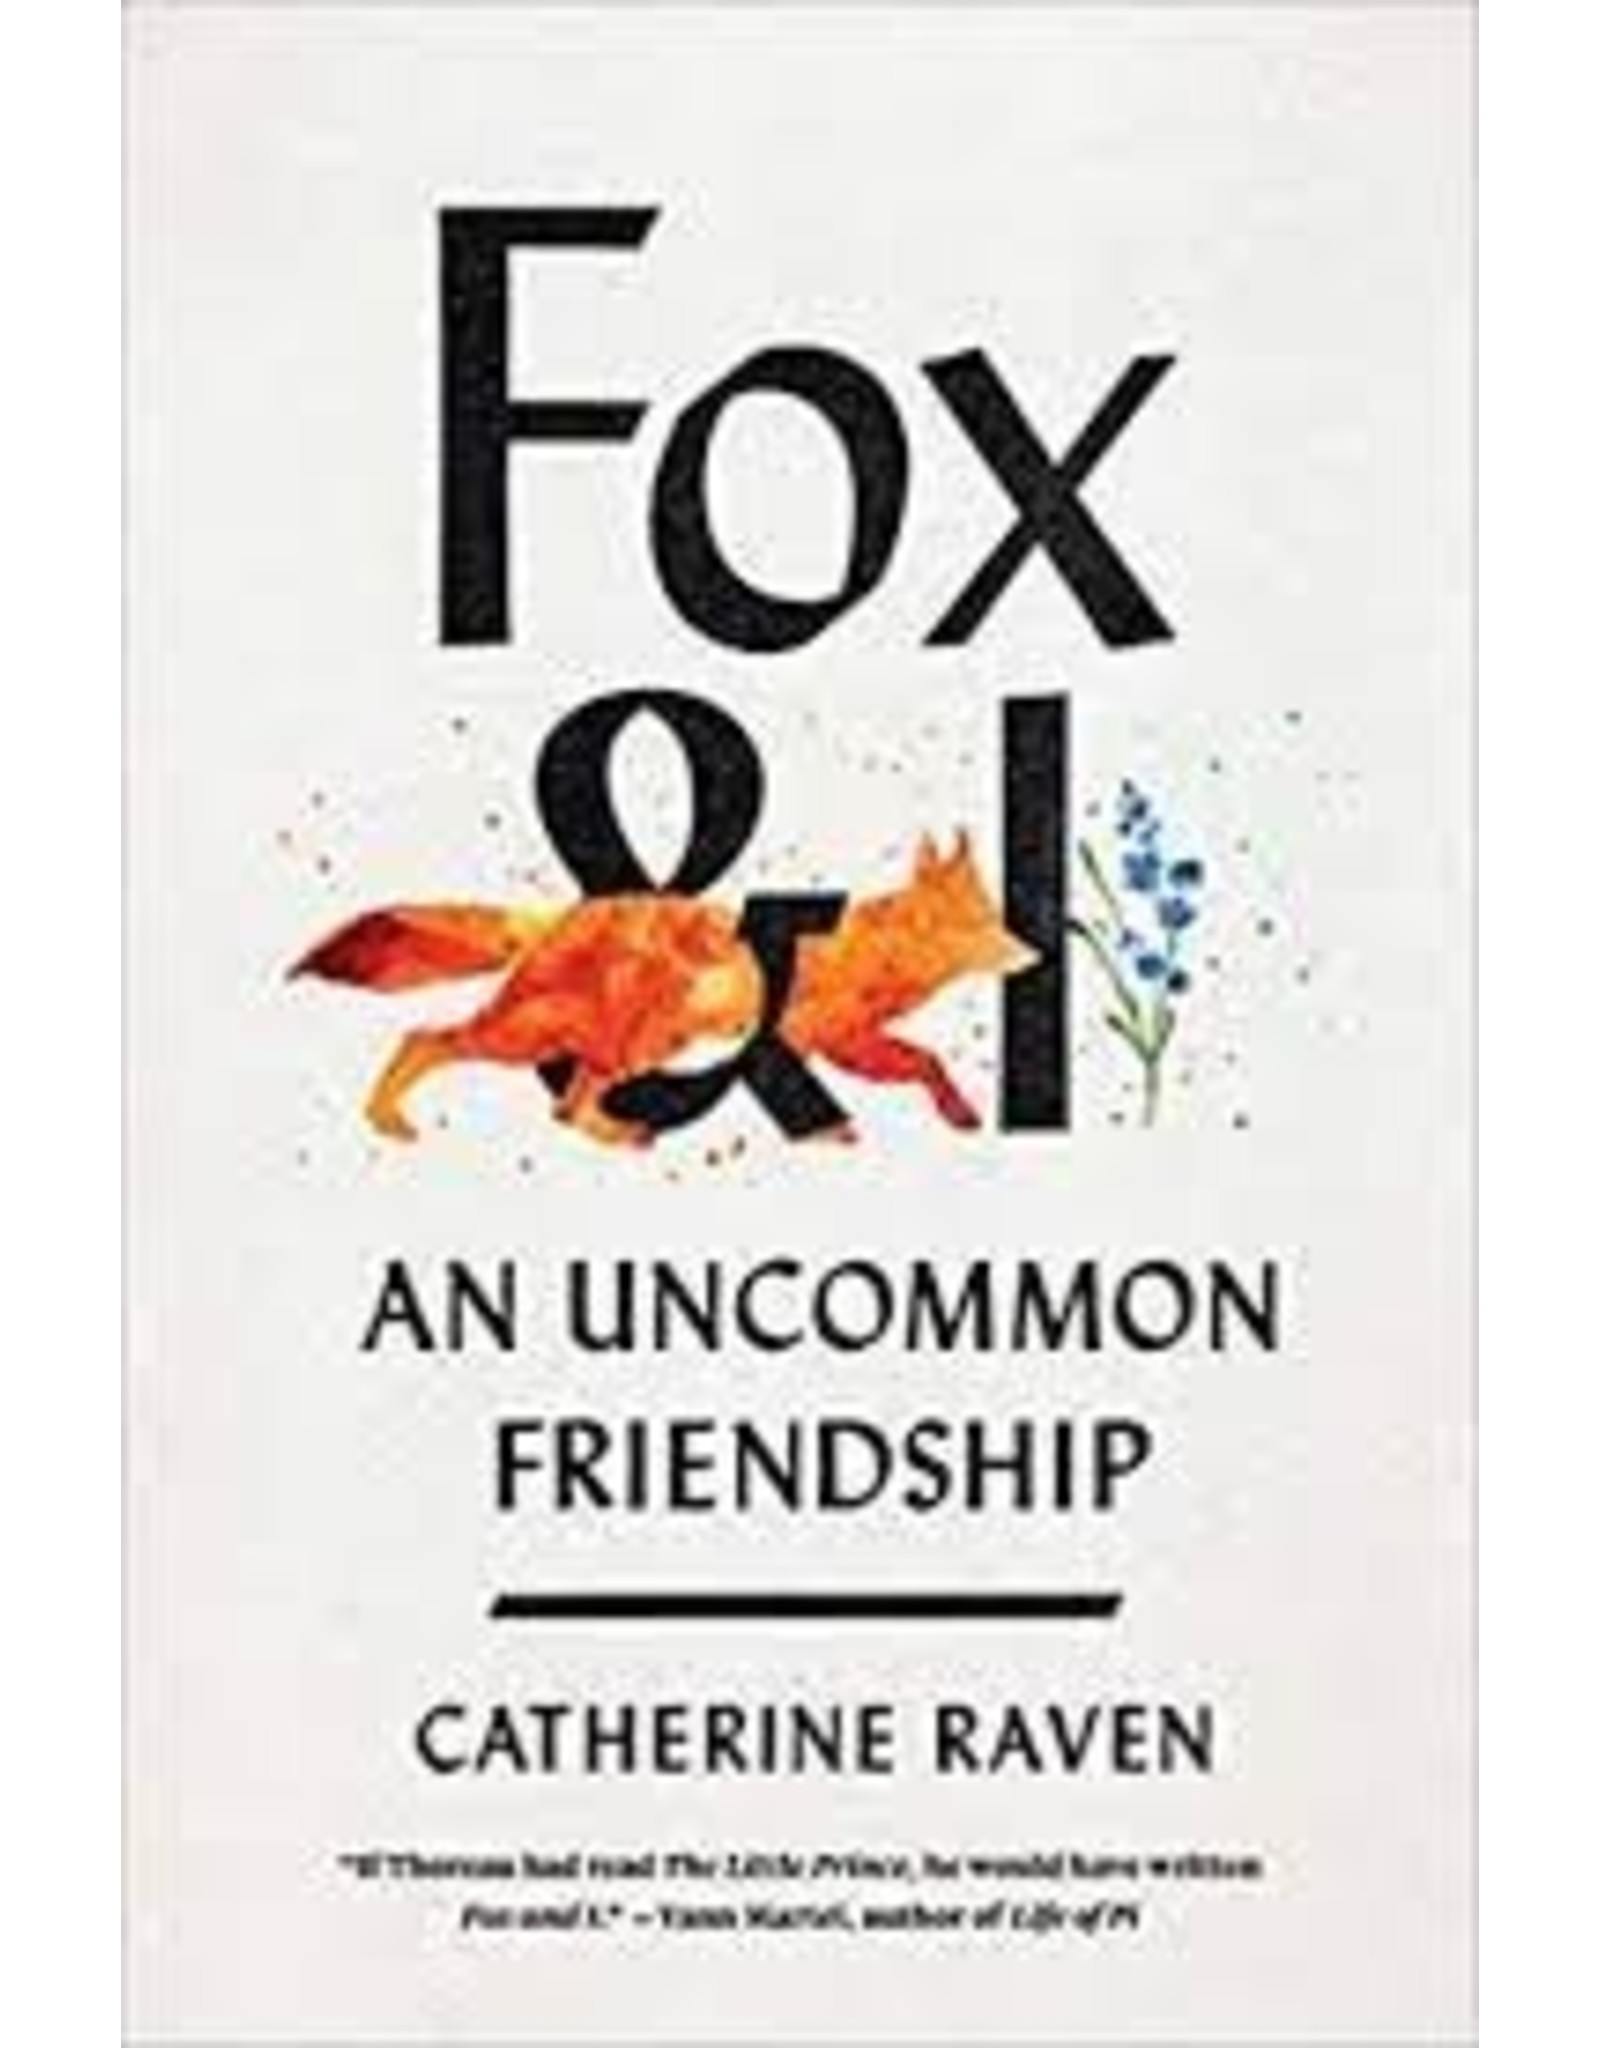 Books Fox & I: An Uncommon Friendship by Catherine Raven